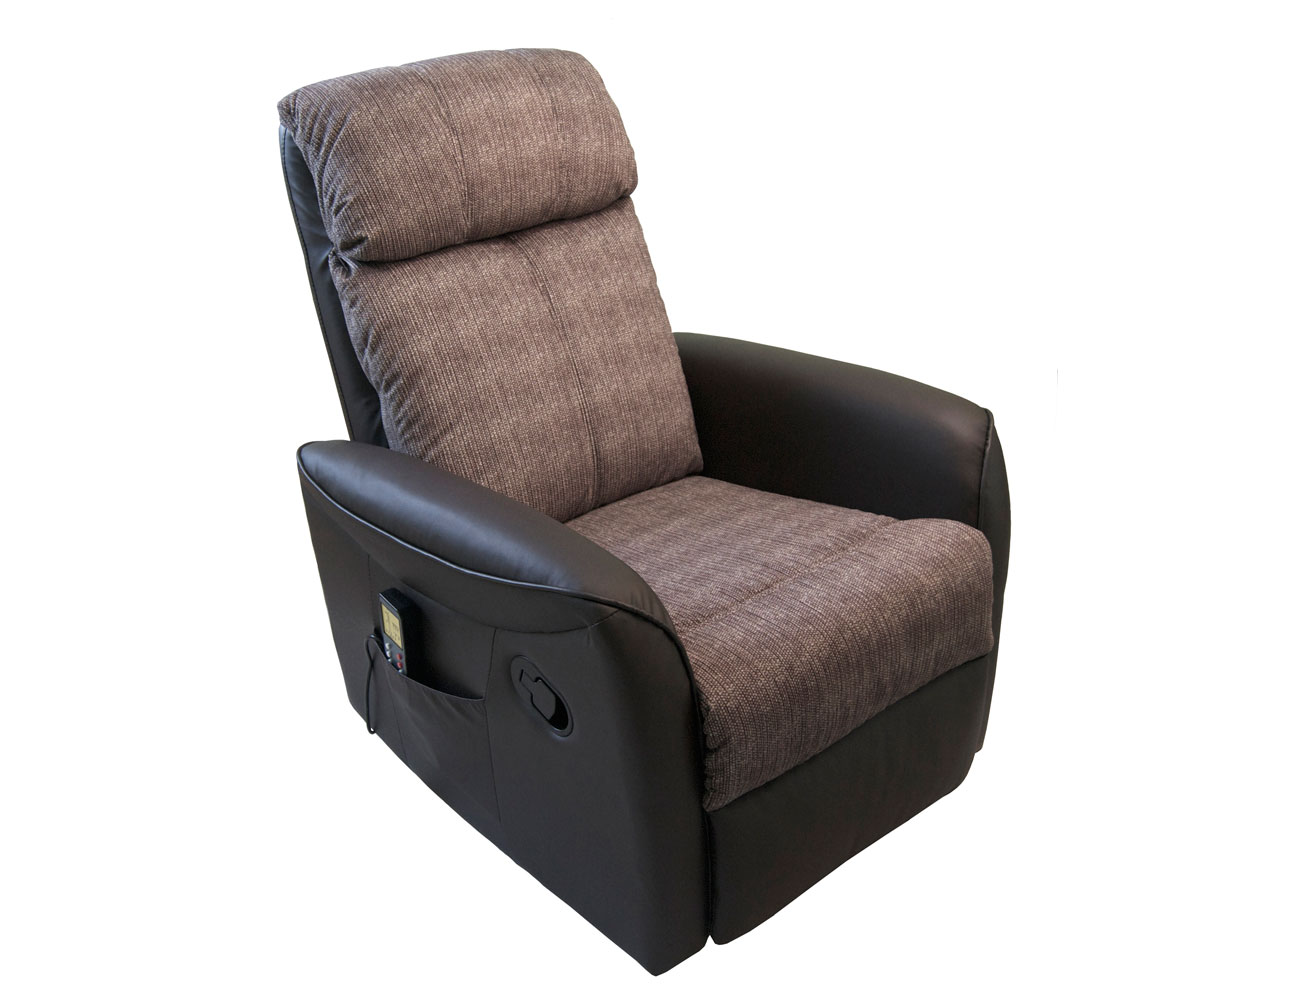 Sillon relax palanca simil piel chocolate rustic